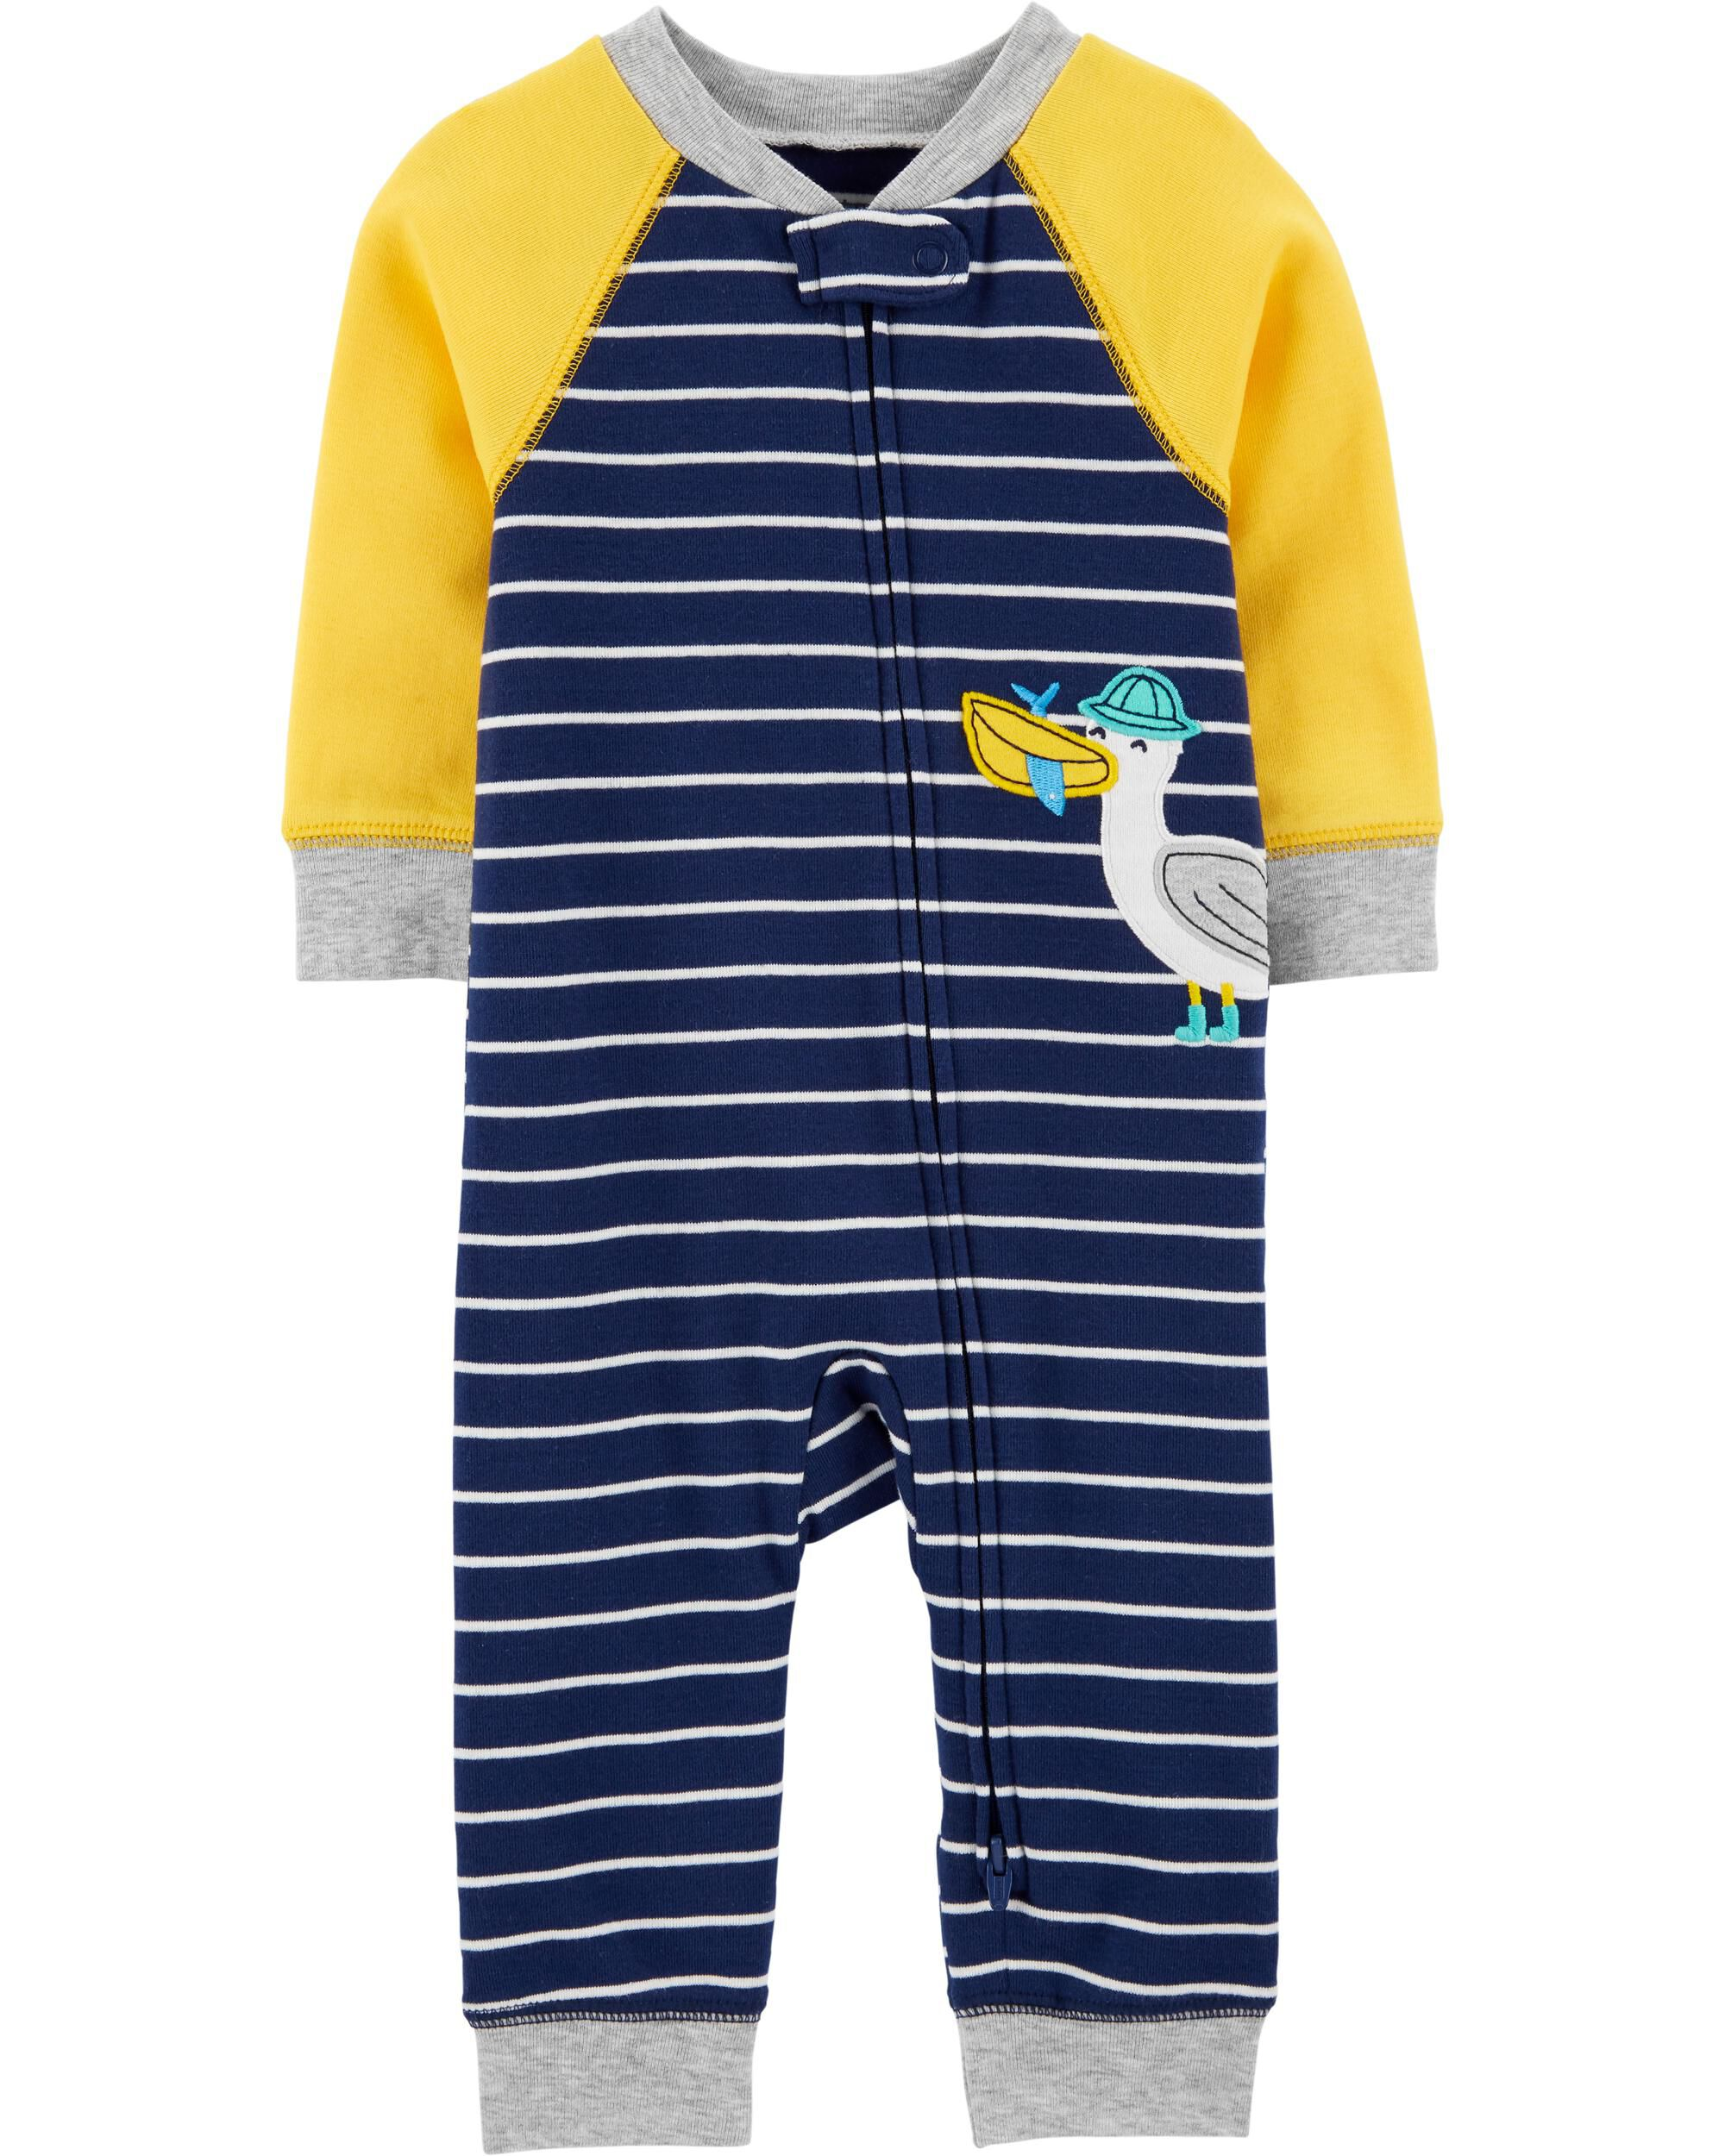 Seagull 2-Way Zip Cotton Sleep & Play